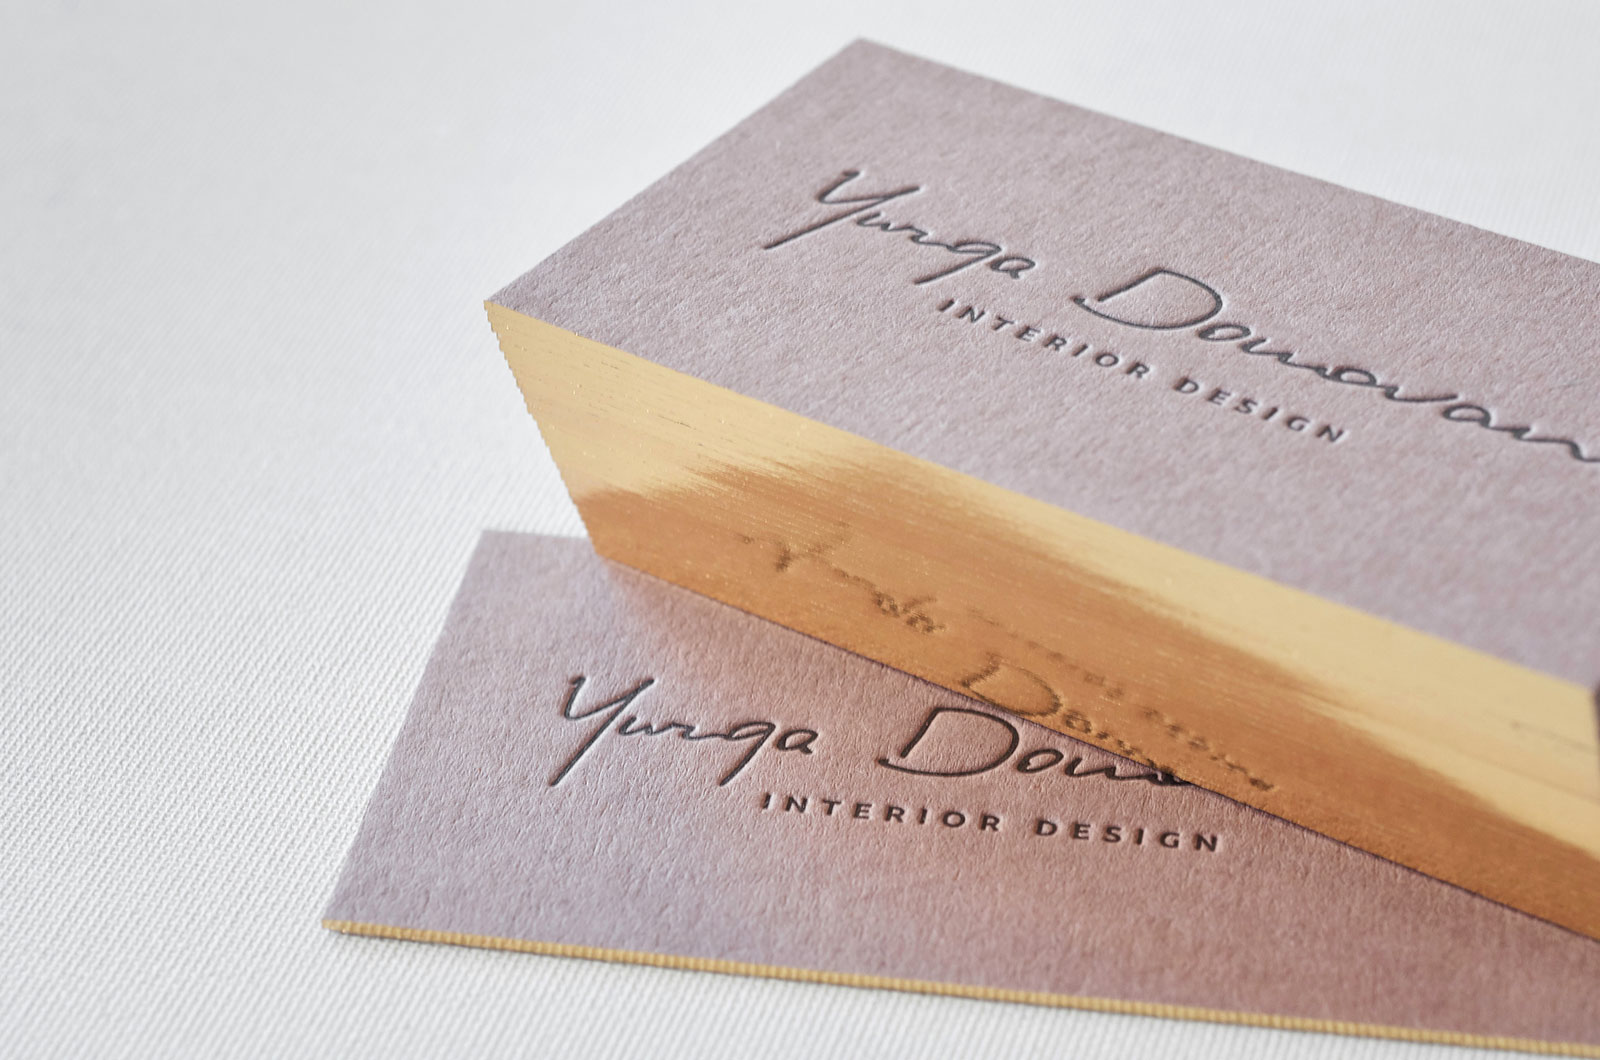 Designing the perfect business card for your startup